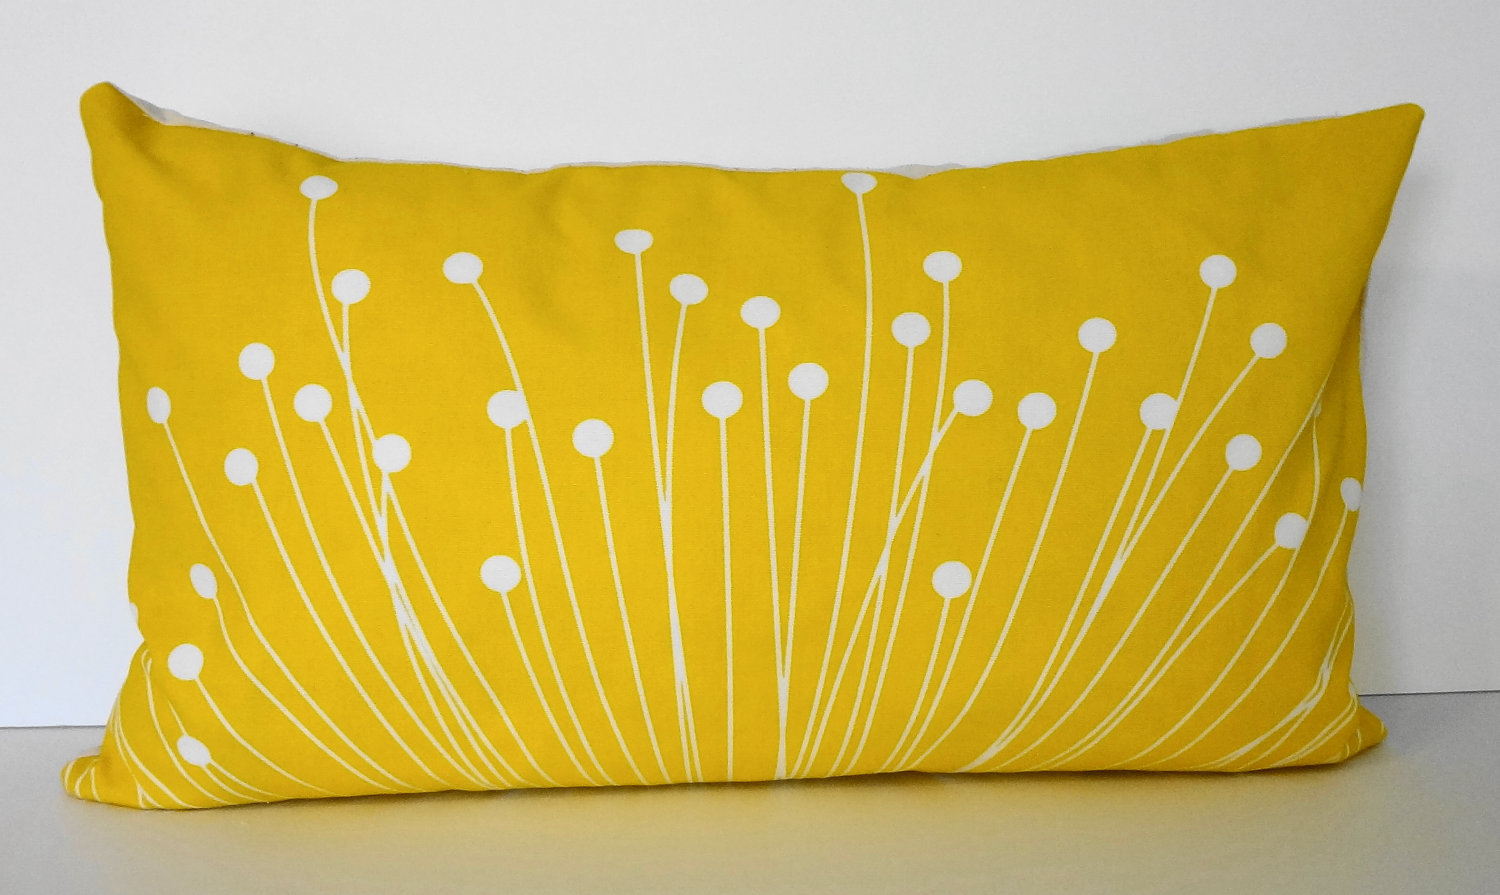 Beautiful Yellow Throw Pillows With 20x20 Inches And With True Patterns Yellow Throw Pillows For Living Room Ideas